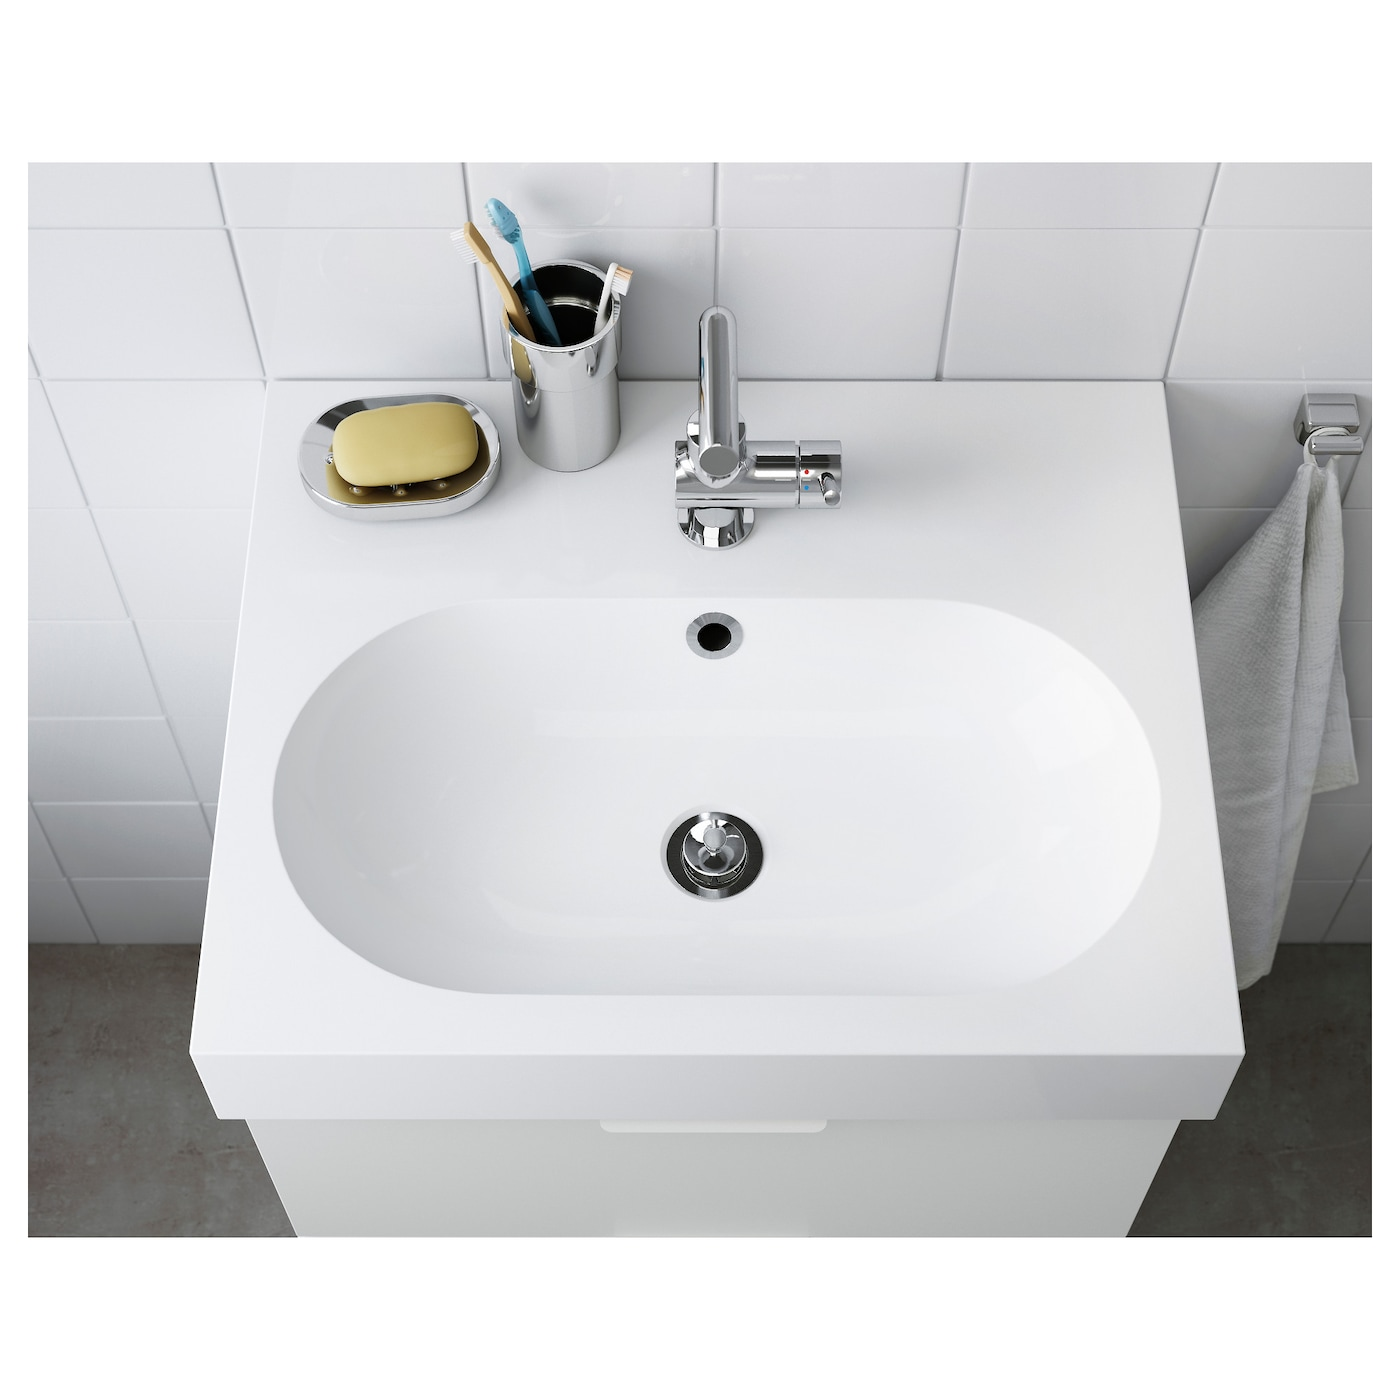 IKEA BRÅVIKEN single wash-basin 10 year guarantee. Read about the terms in the guarantee brochure.